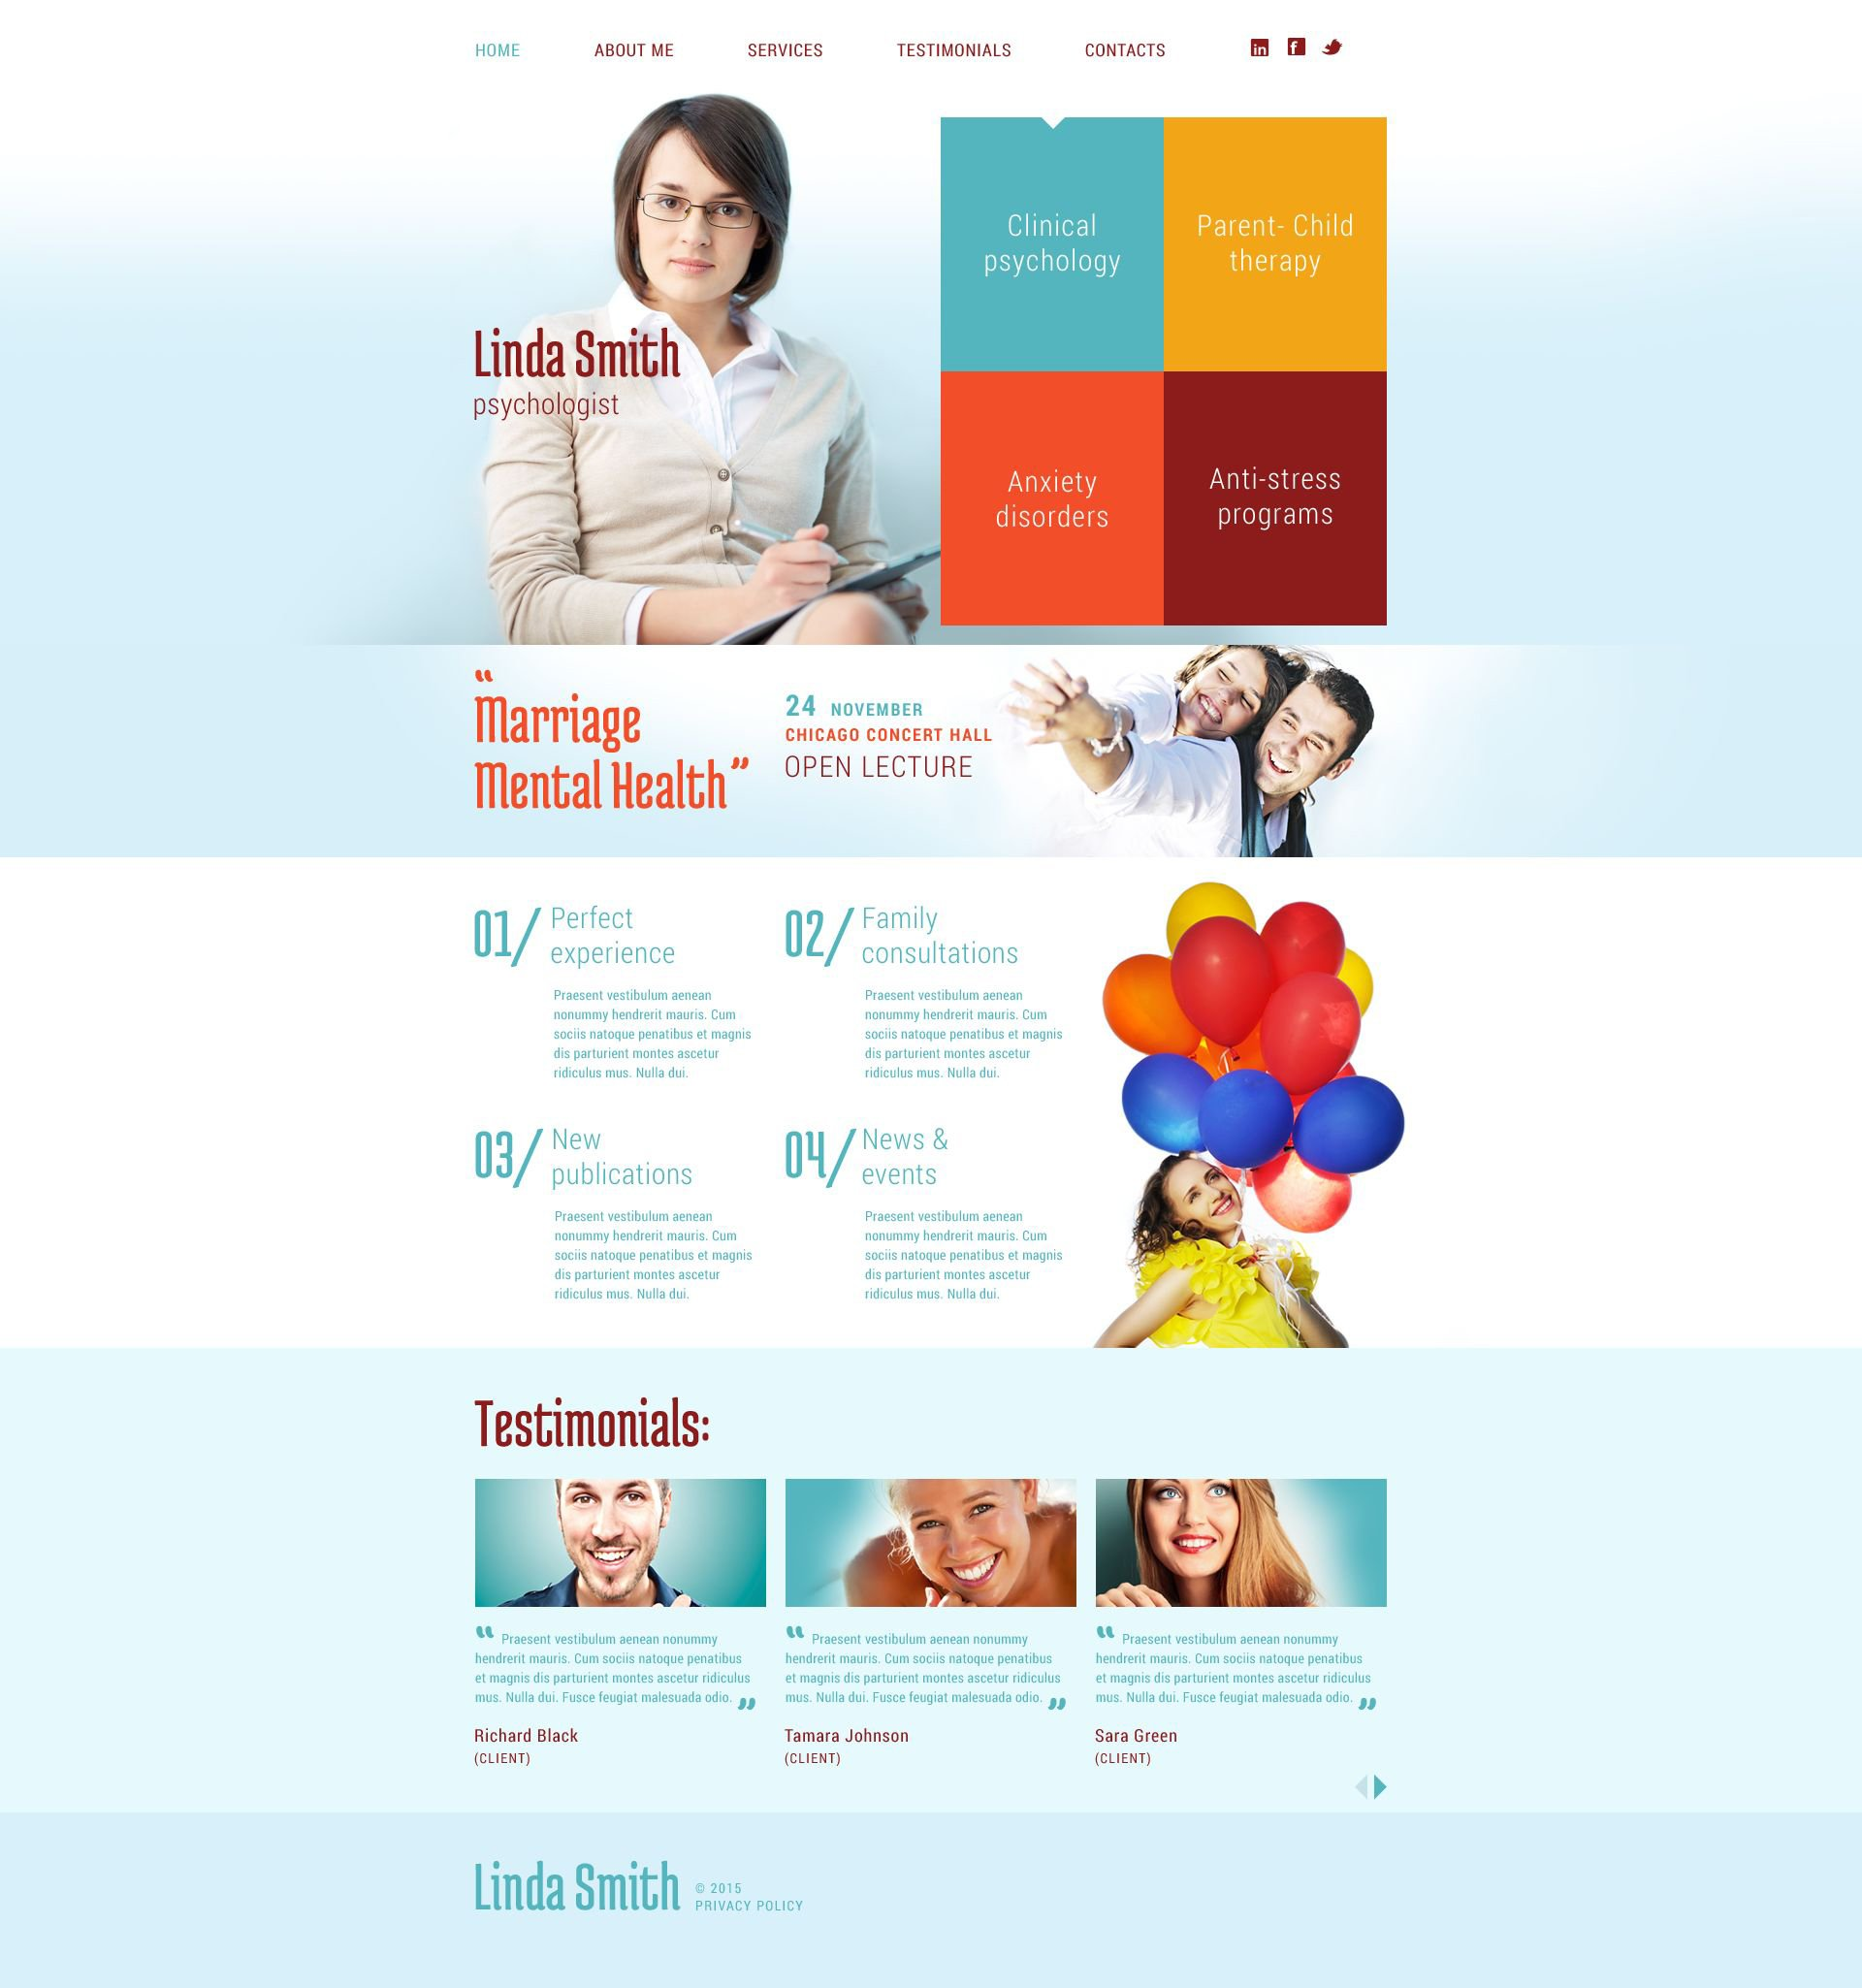 The Linda Smith Psychologist Responsive Javascript Animated Design 53011, one of the best website templates of its kind (medical, most popular), also known as Linda Smith psychologist website template, psychological website template, family website template, psycology website template, private mental website template, stress website template, anxiety website template, disorder website template, mood website template, trauma website template, abuse website template, health website template, private illness website template, specialist website template, confidentiality and related with Linda Smith psychologist, psychological, family, psycology, private mental, stress, anxiety, disorder, mood, trauma, abuse, health, private illness, specialist, confidentiality, etc.